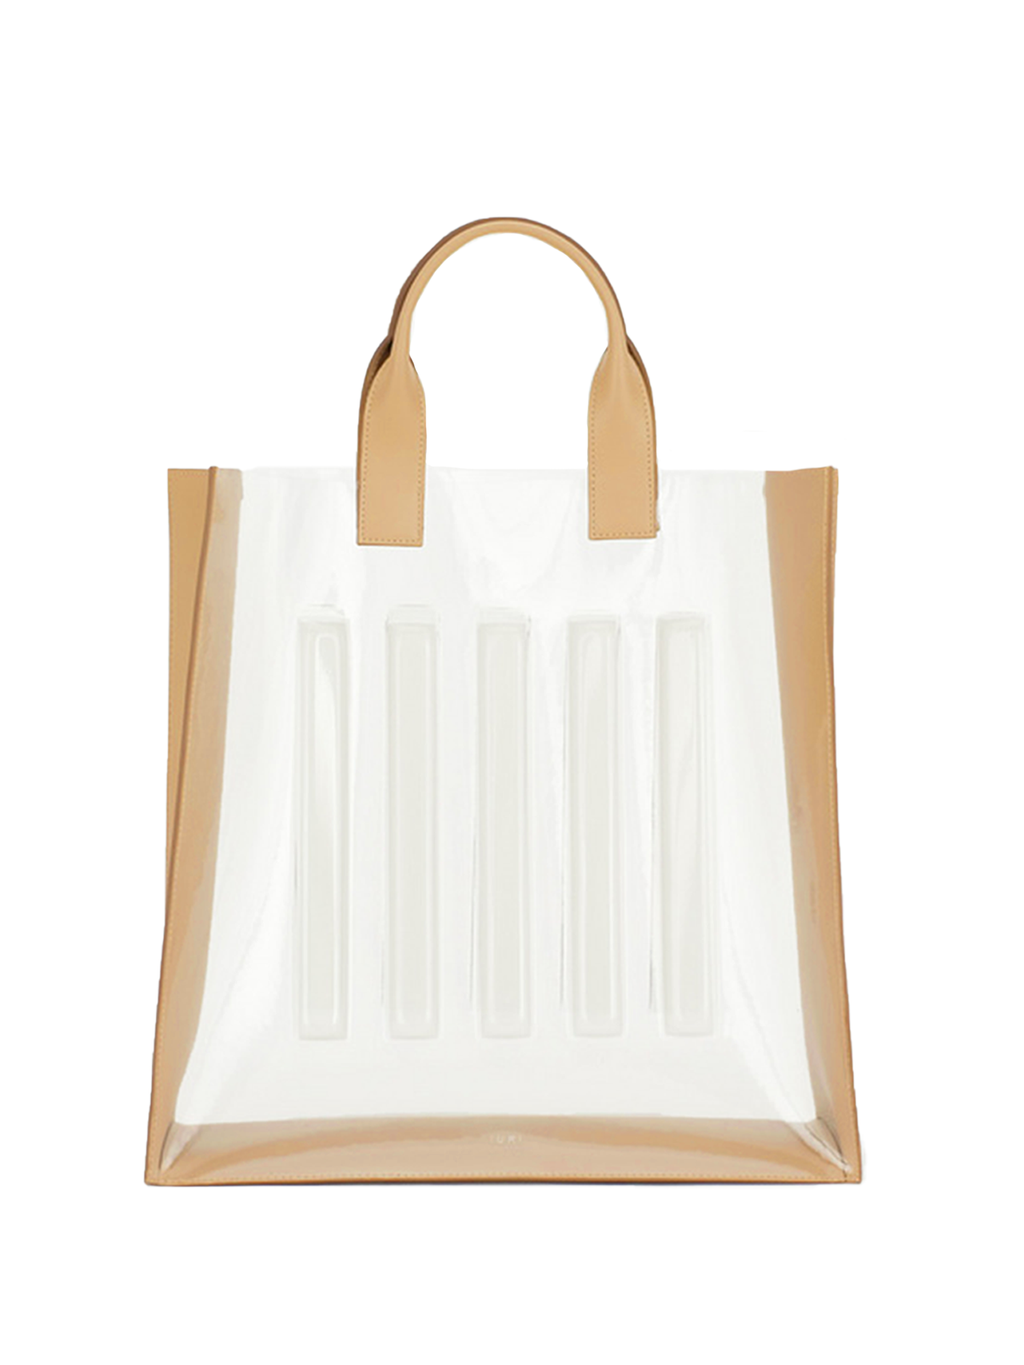 IURI Shopper Tote Bag